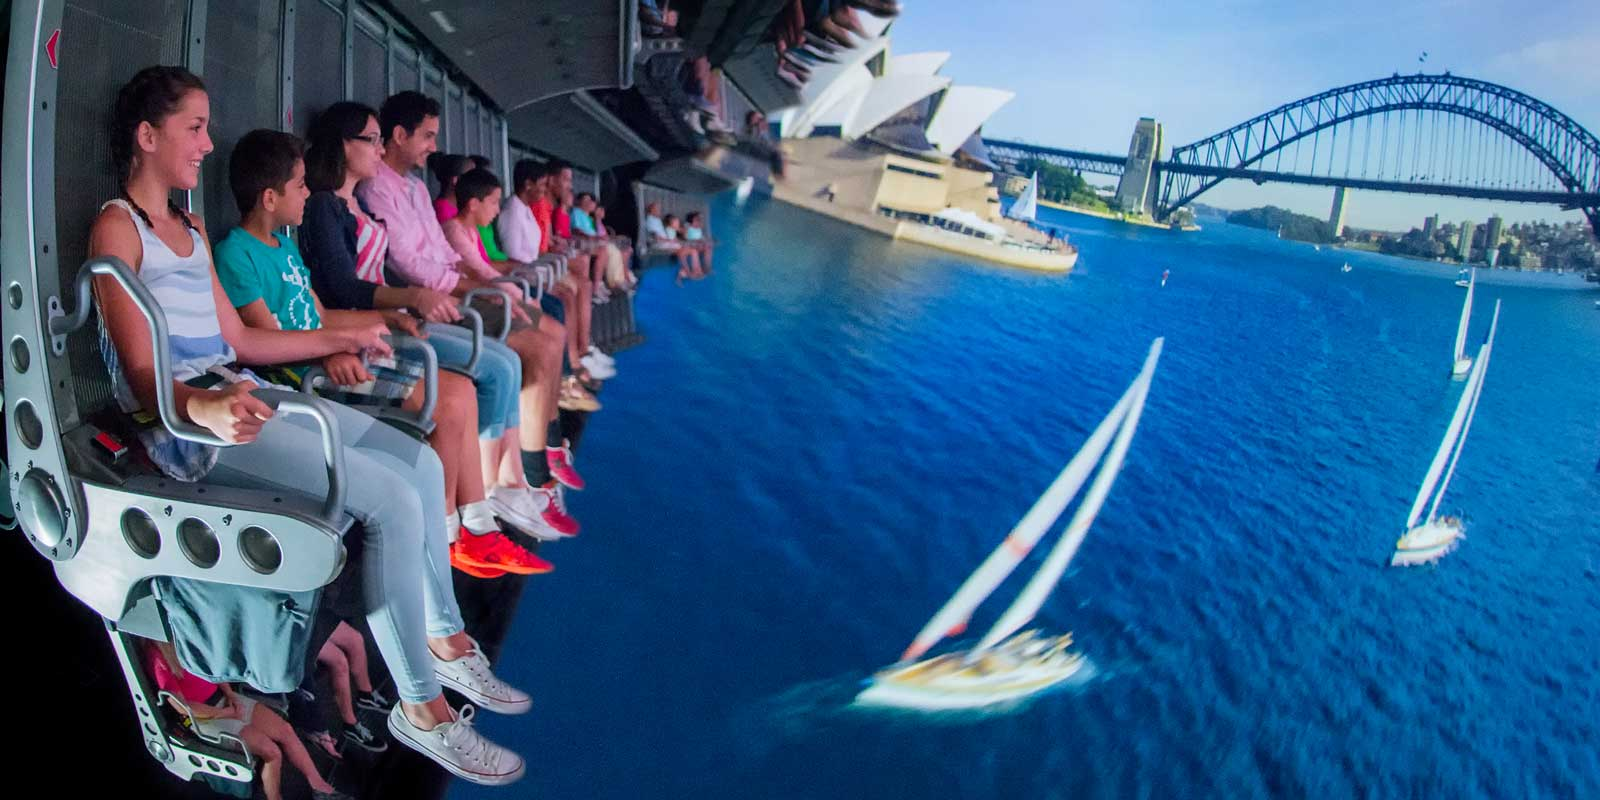 Composite photo of people enjoying Epcot's Soarin' ride, with a scene from Sydney Harbor in the foreground.